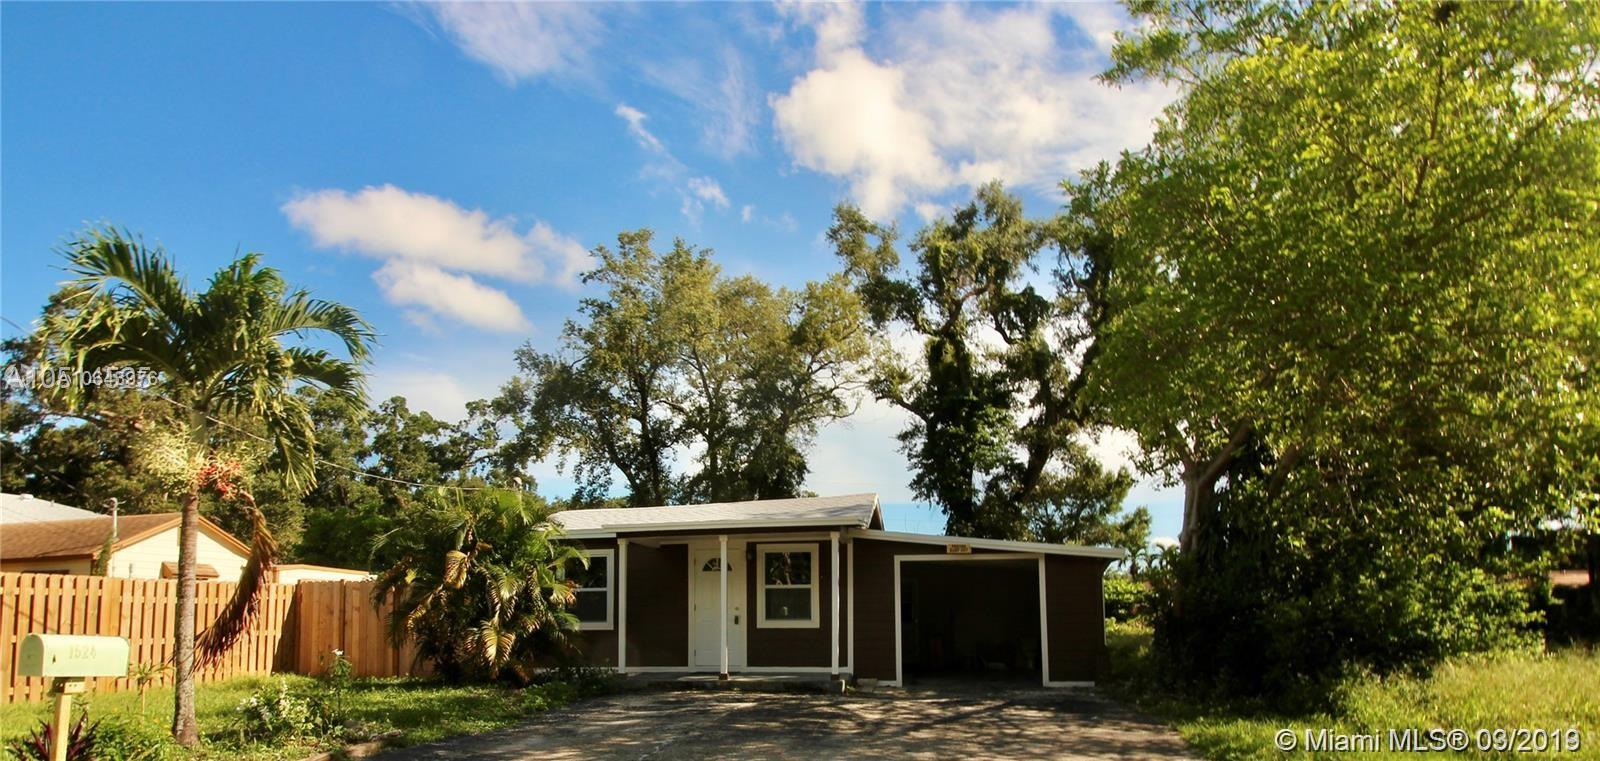 Fully remodeled, a few minutes away from Fort Lauderdale Airport and the beach.Do not miss out to own or invest in this beautiful home with a huge backyard. Included :Brand new appliances( dishwasher, washer/dryer,refrigerator,stove) Lot size 9,347 sqtf. Seller will contribute $1,000 towards buyer closing costs.